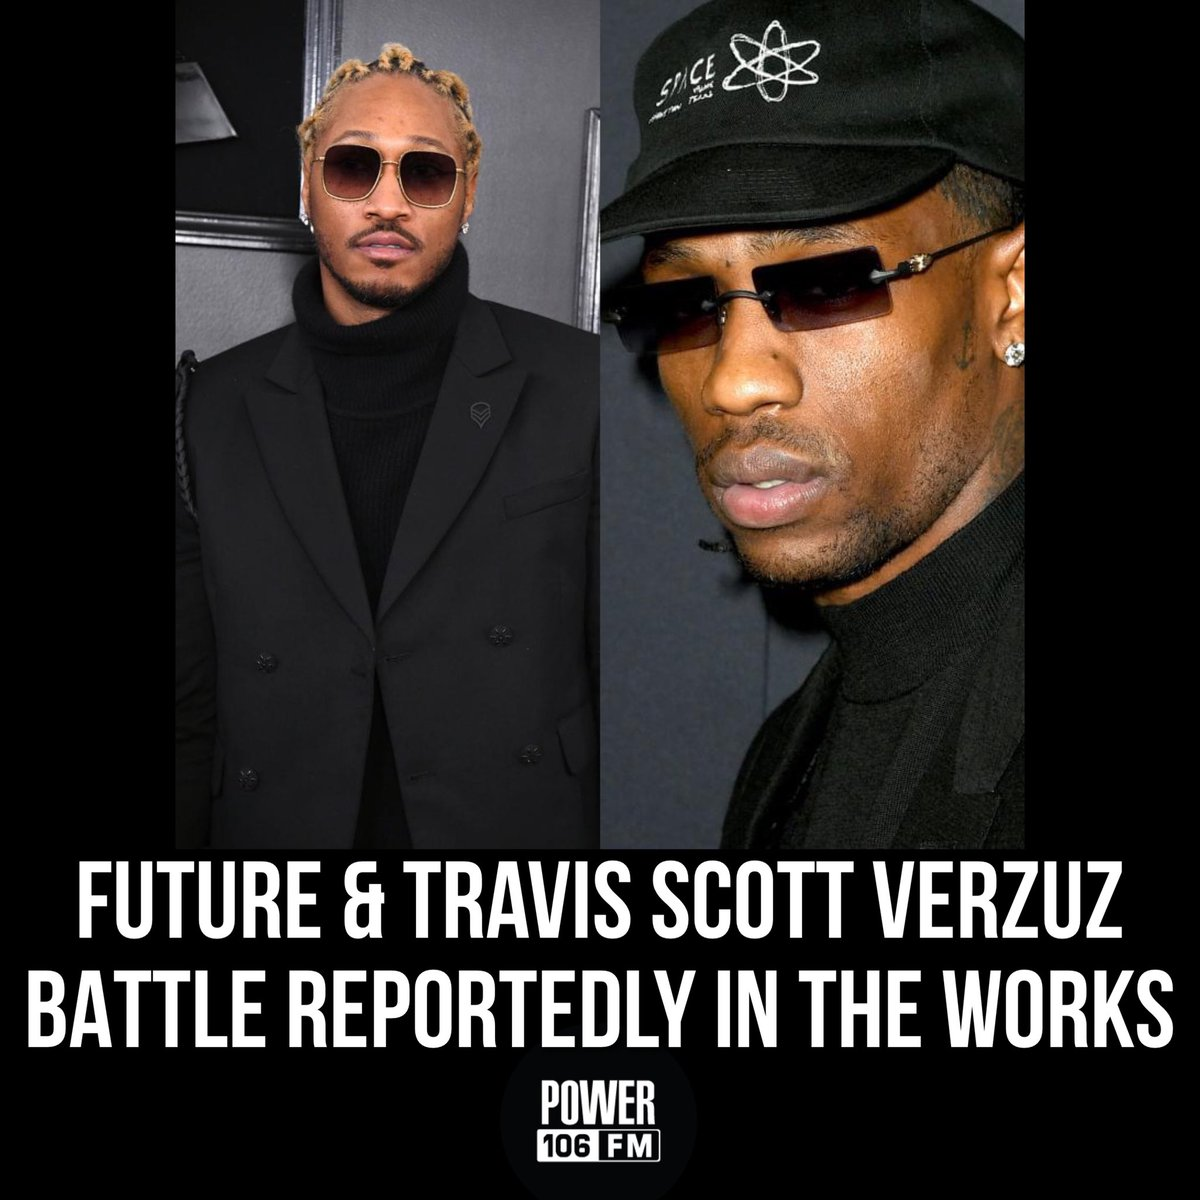 Fans believe that a Future & Travis Scott #Verzuz could be on the way! 🤔🔥👀 Who do y'all think would take the W in this battle, if it happens⁉️ • 📸: Kevin Winter, Jon Kopaloff / Gett Images